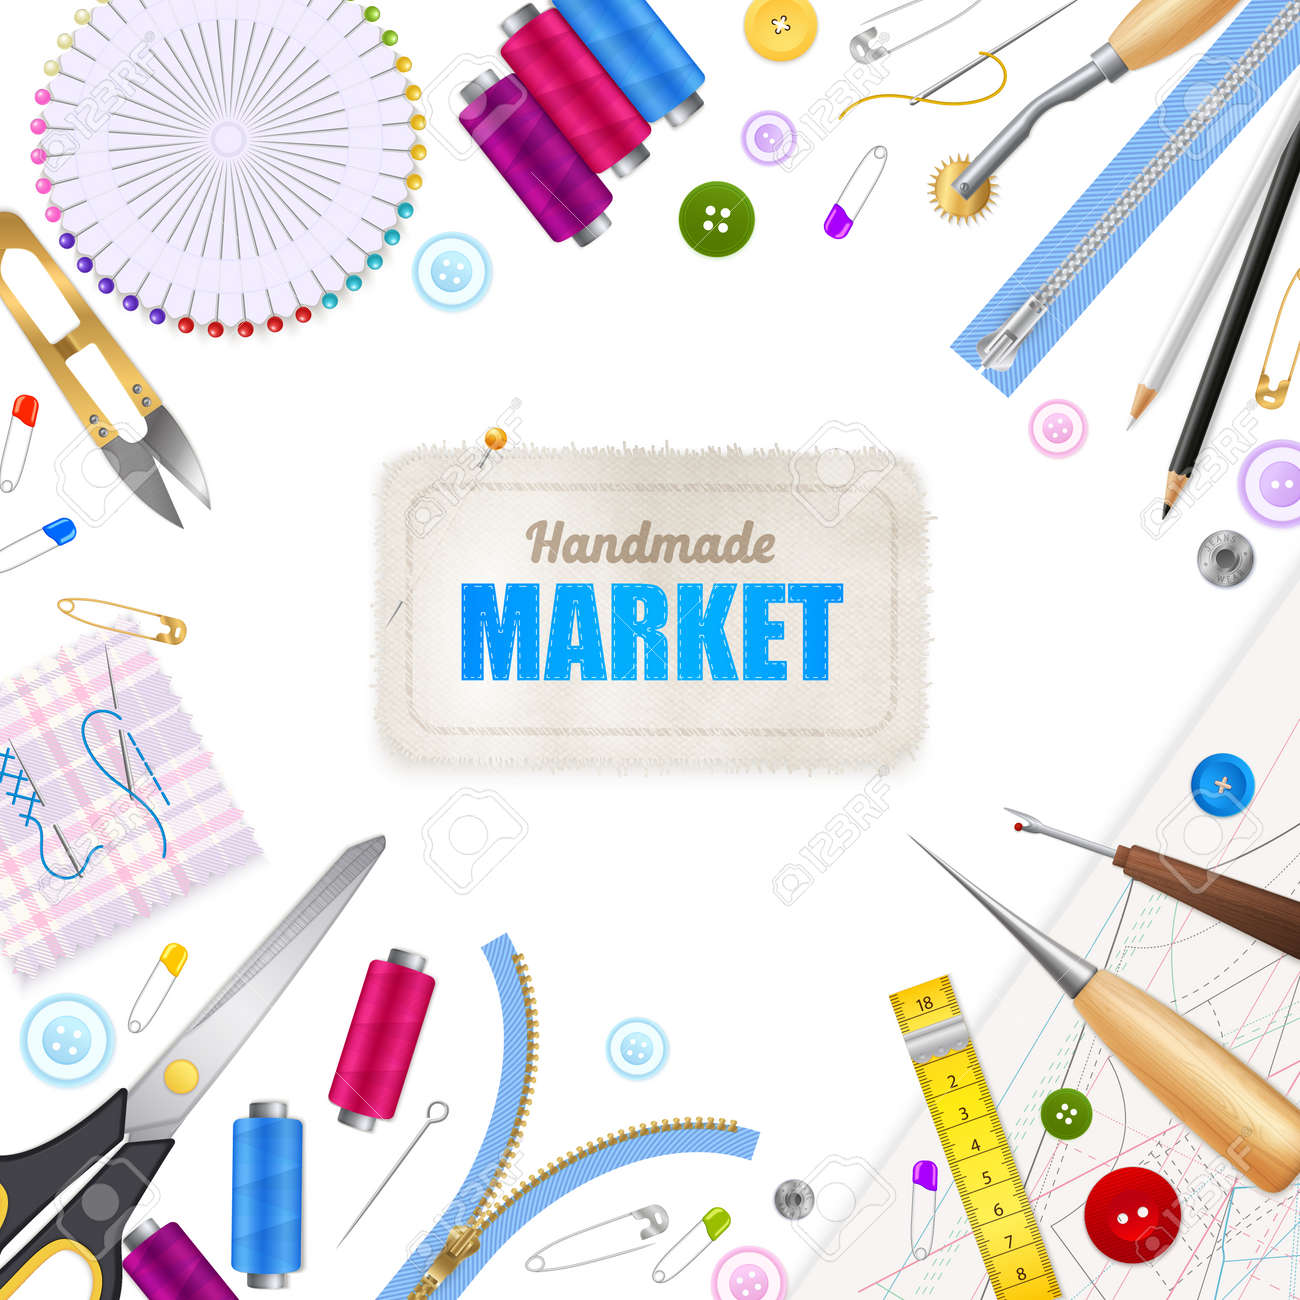 Handmade market realistic white background with frame compose of sewing tools and accessories vector illustration - 166130632